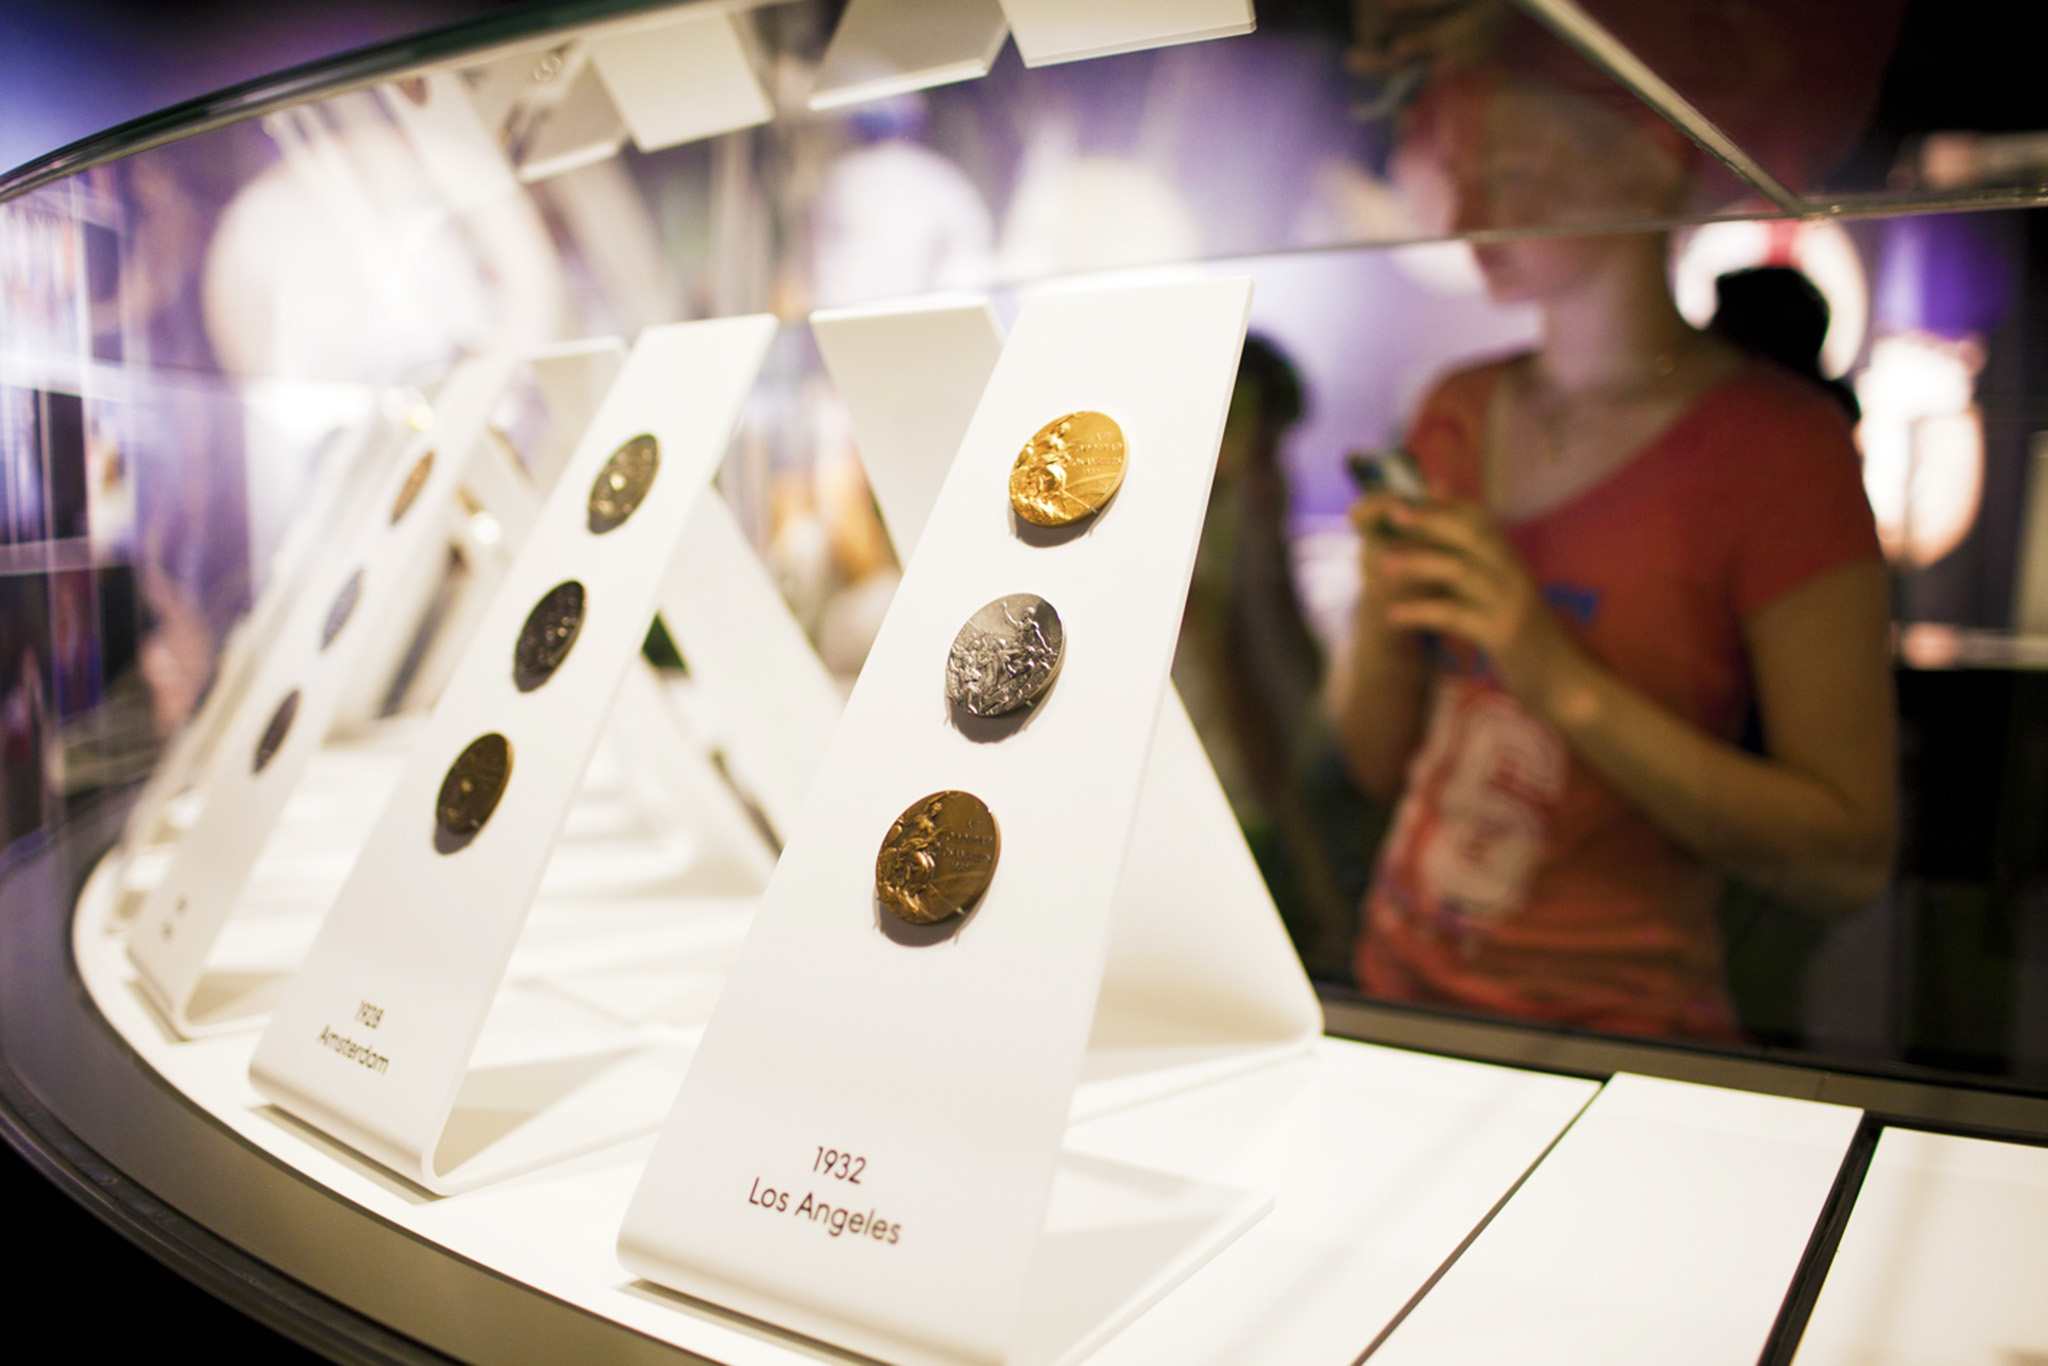 kt_2020_300_Keytours_excursions_Swisstours_lausanne_olympic museum20_2048_10